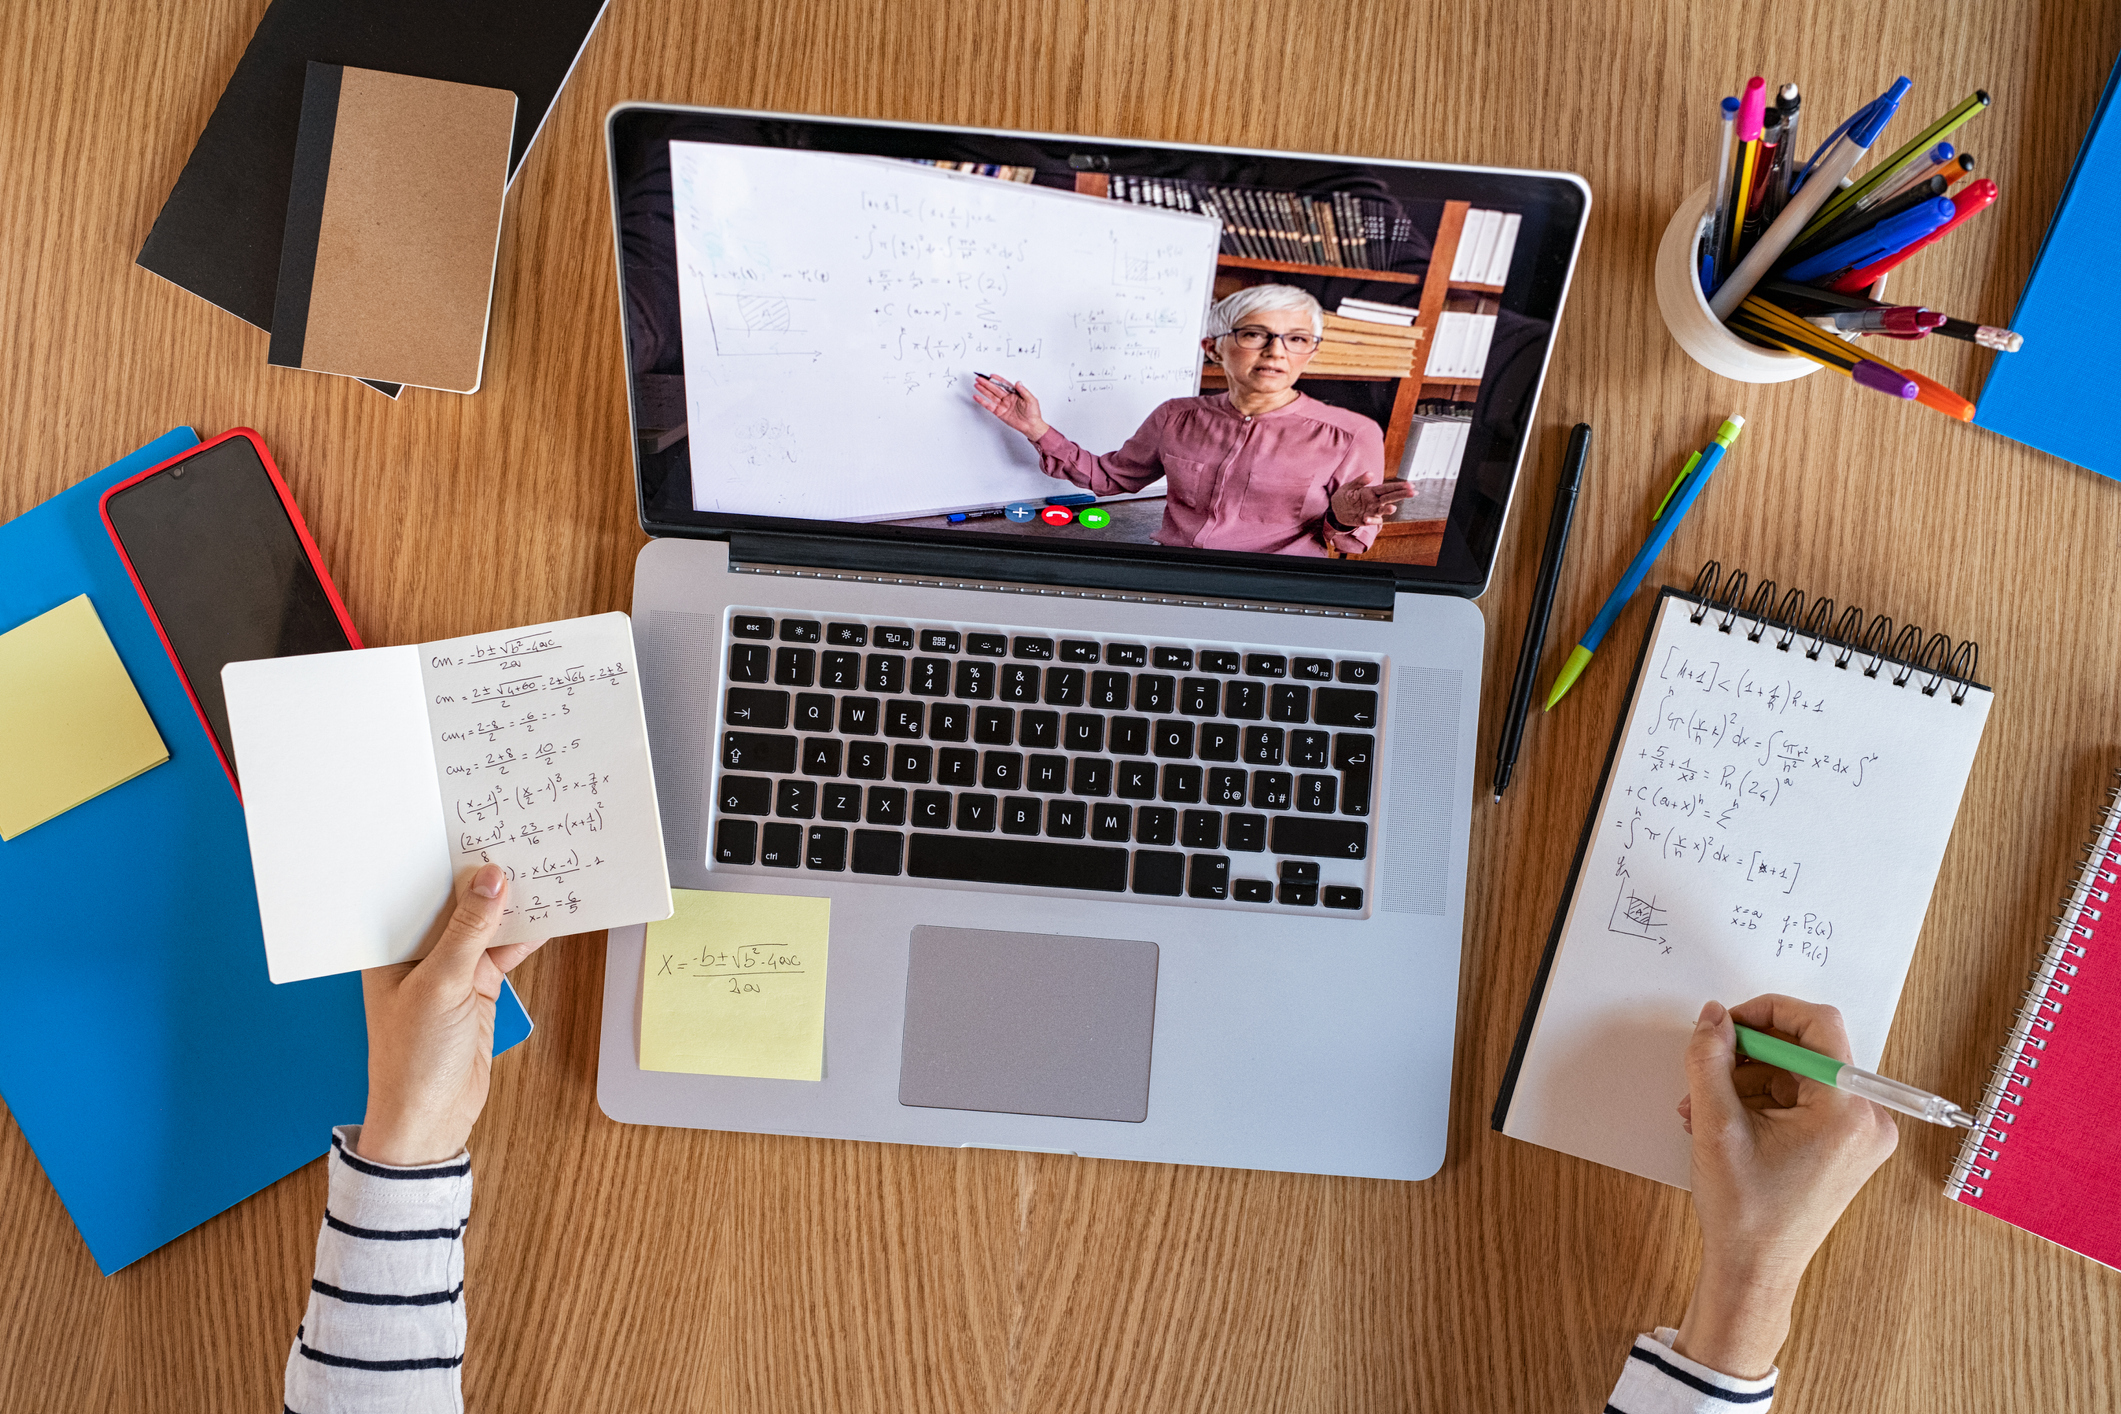 Student learning at home with online lesson. Image credit: iStock